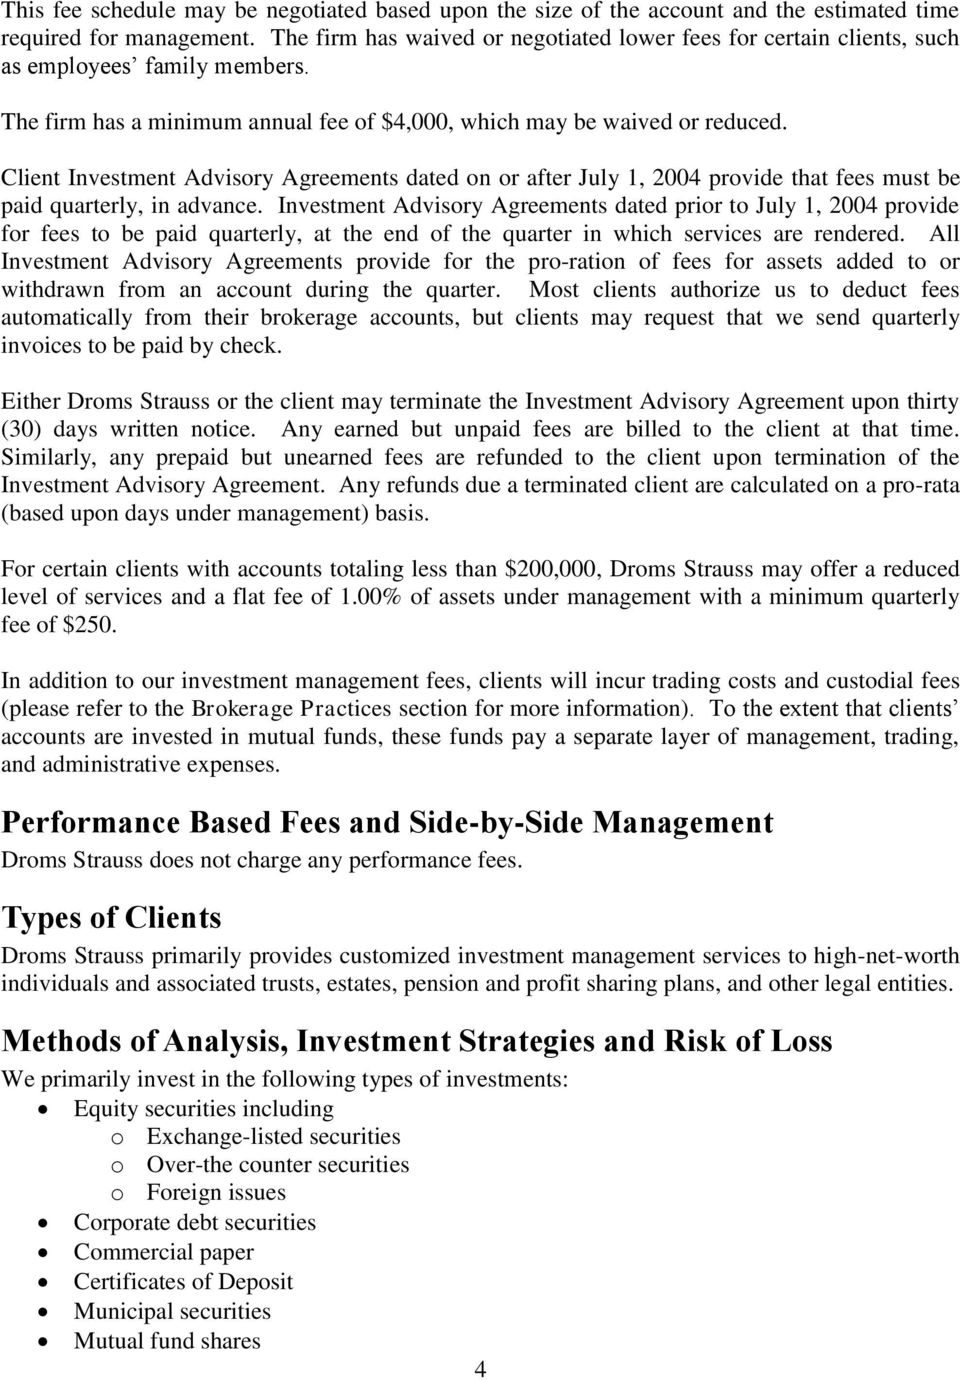 Client Investment Advisory Agreements dated on or after July 1, 2004 provide that fees must be paid quarterly, in advance.